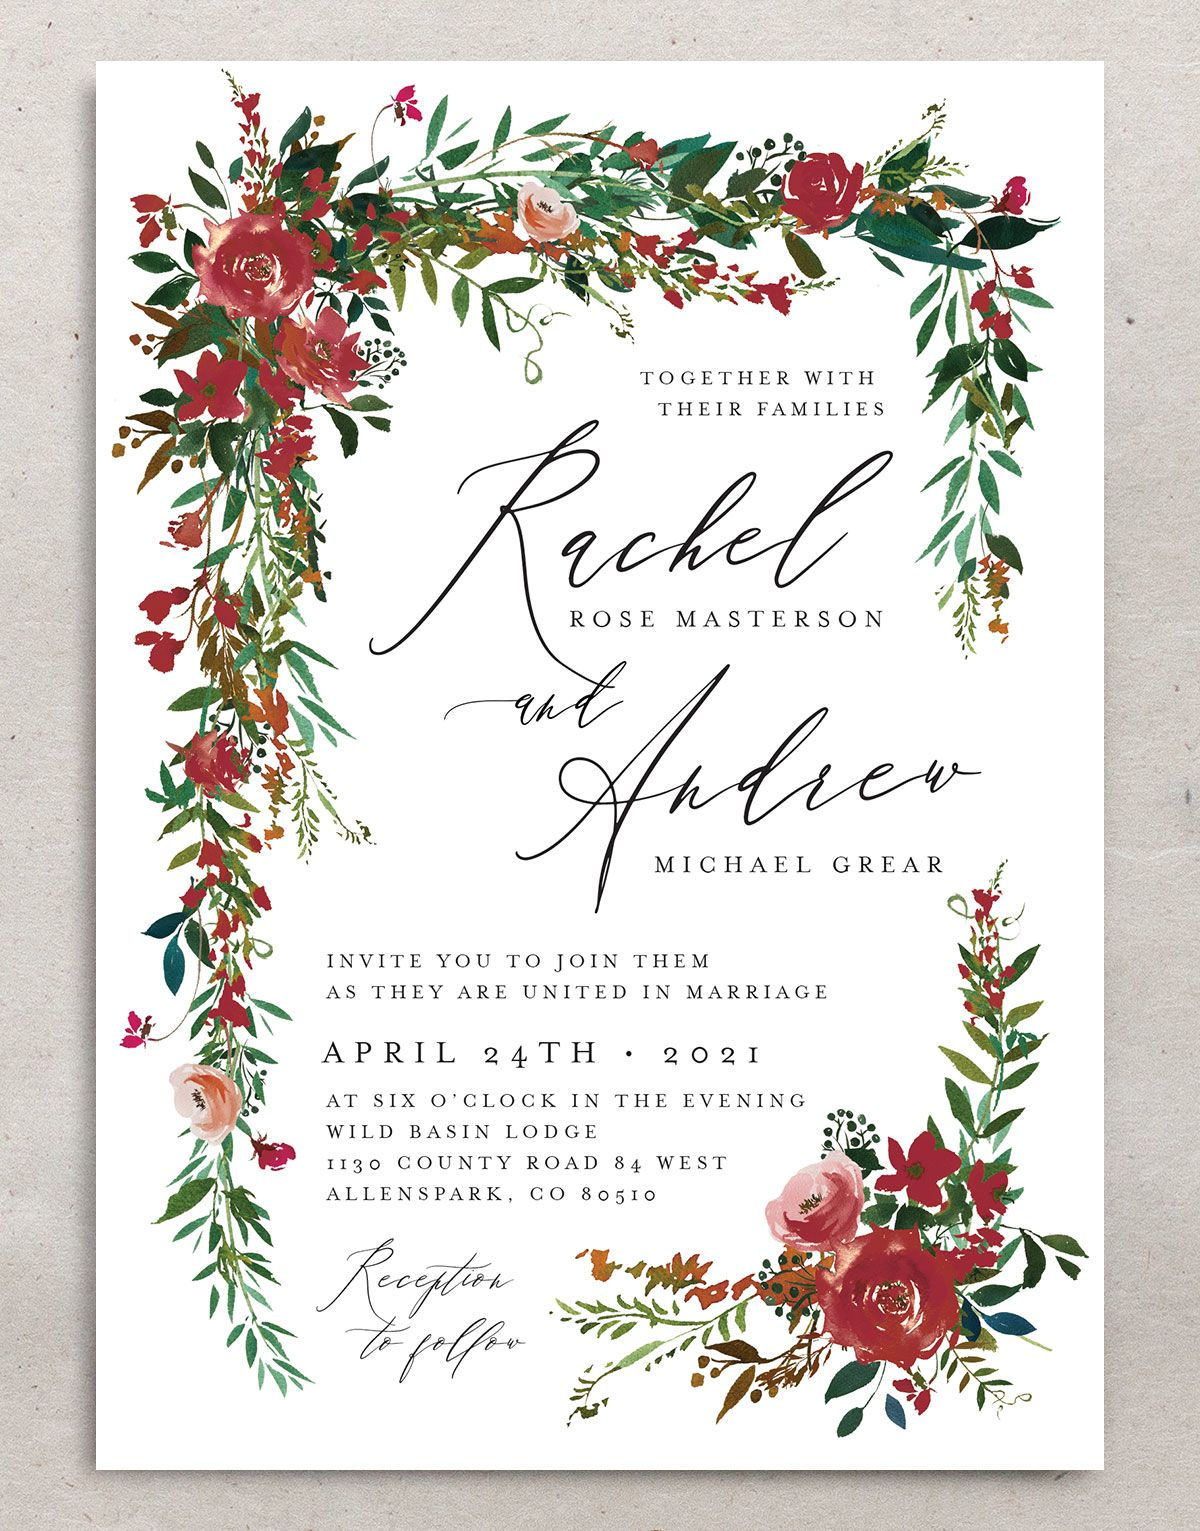 Cascading Altar wedding invites in burgundy